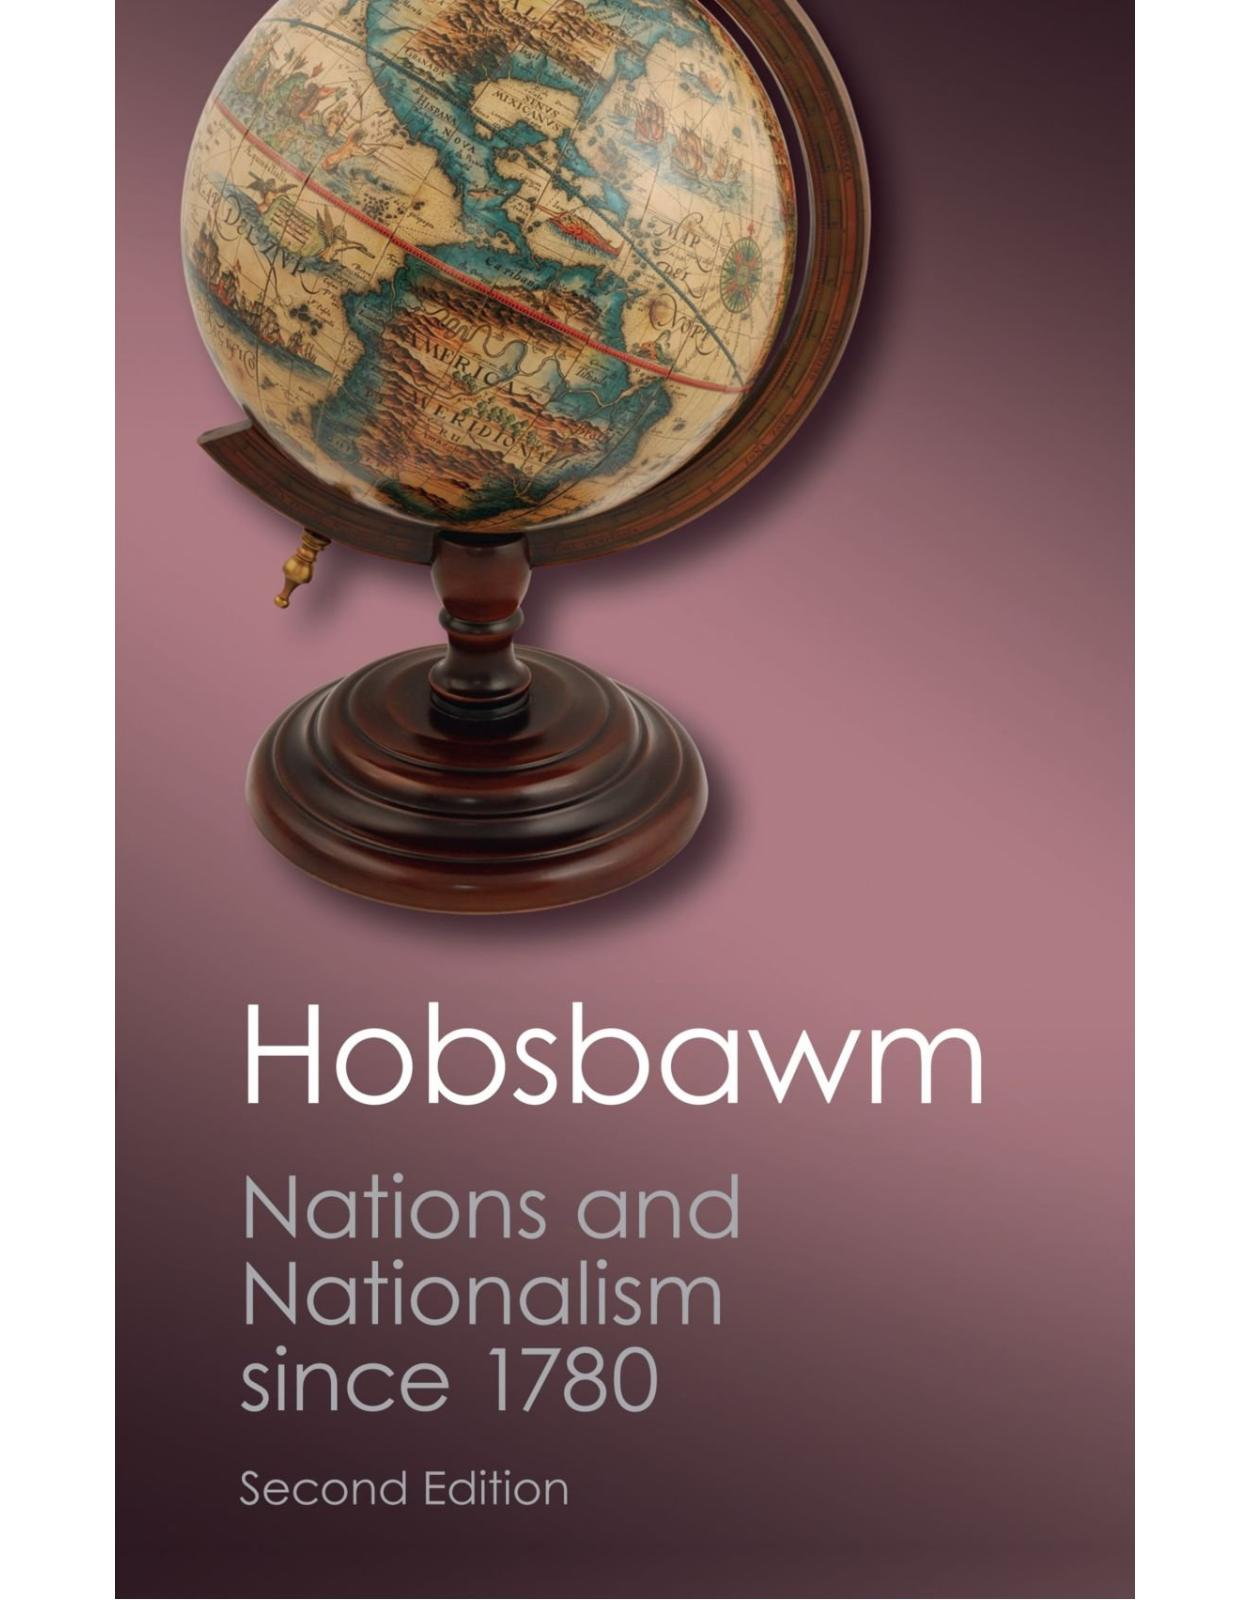 Nations and Nationalism since 1780: Programme, Myth, Reality (Canto Classics)